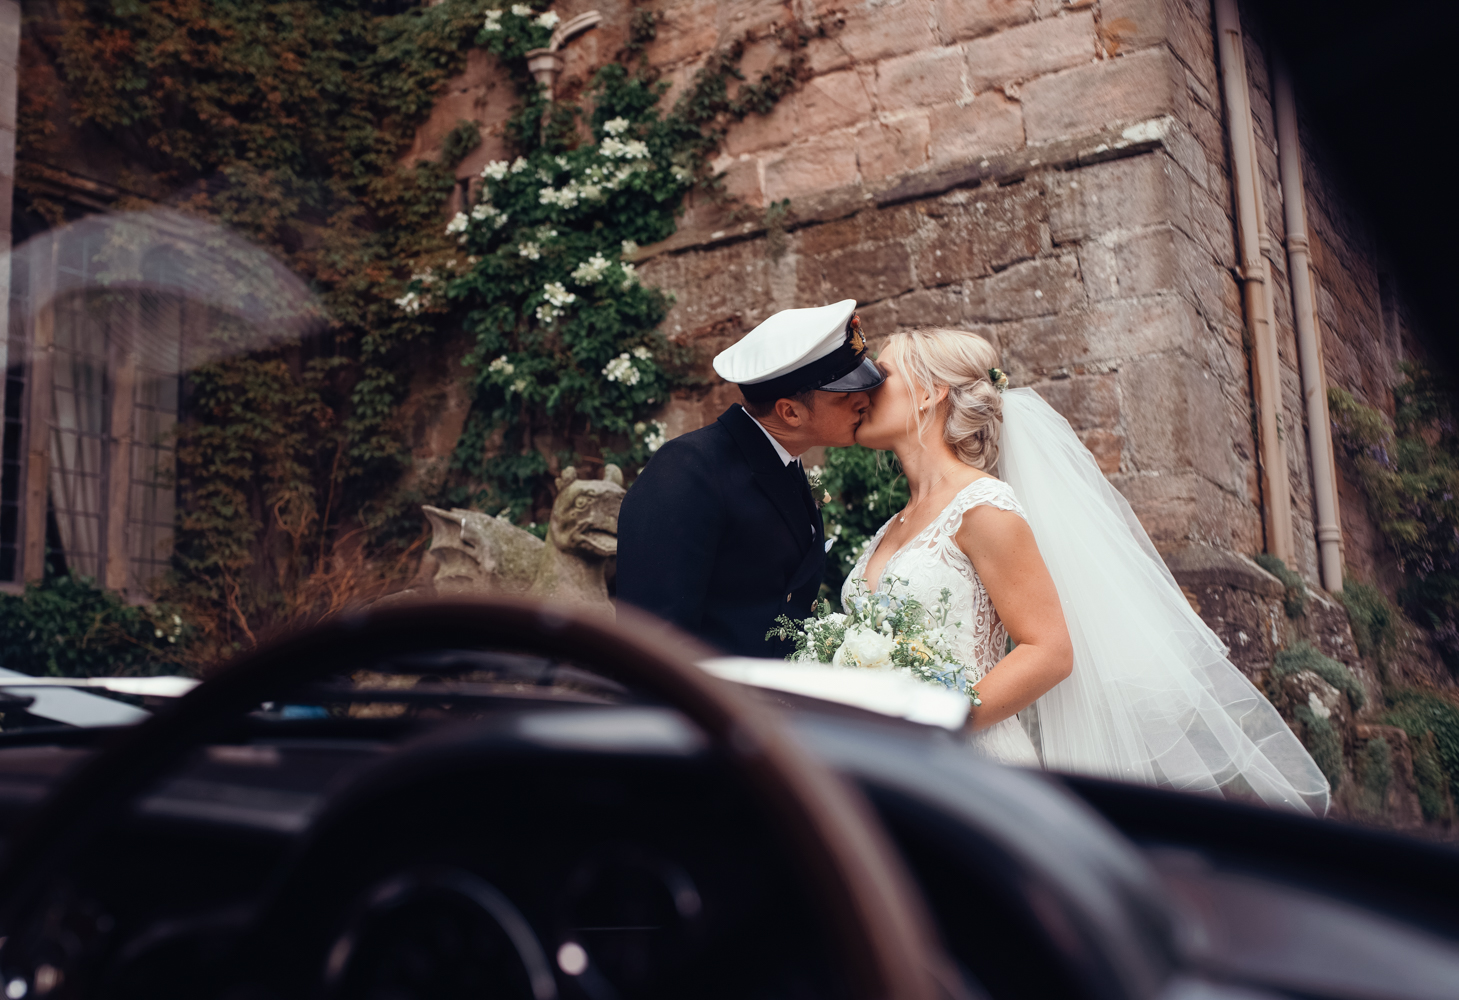 The bride and groom kissing through the front window of the Aston Martin